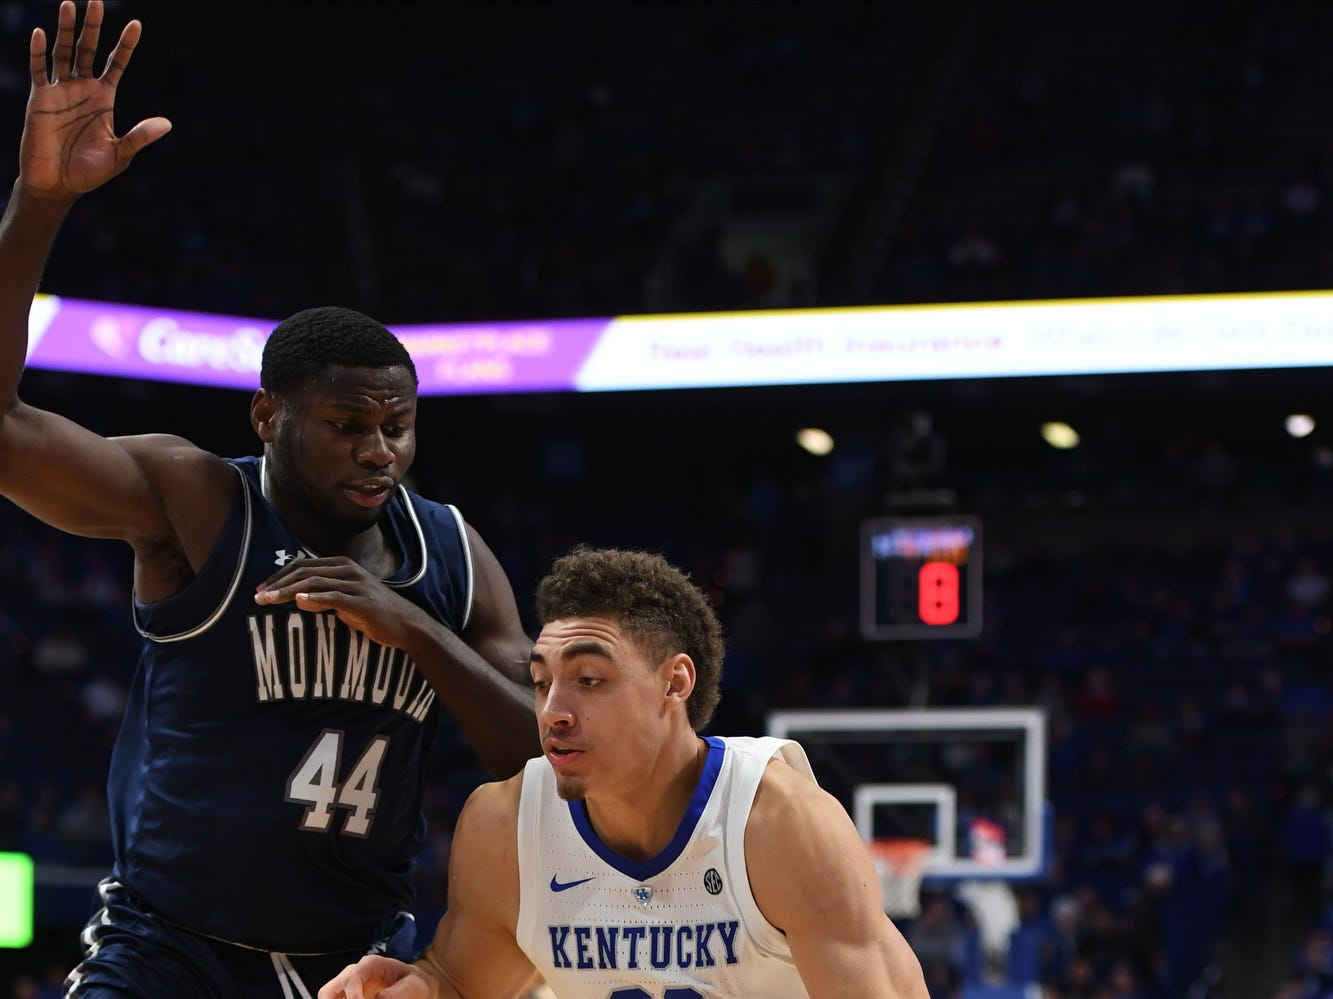 UK F Reid Travis drives with the ball during the University of Kentucky mens basketball game against Monmouth at Rupp Arena in Lexington, Kentucky on Wednesday, November 28, 2018.